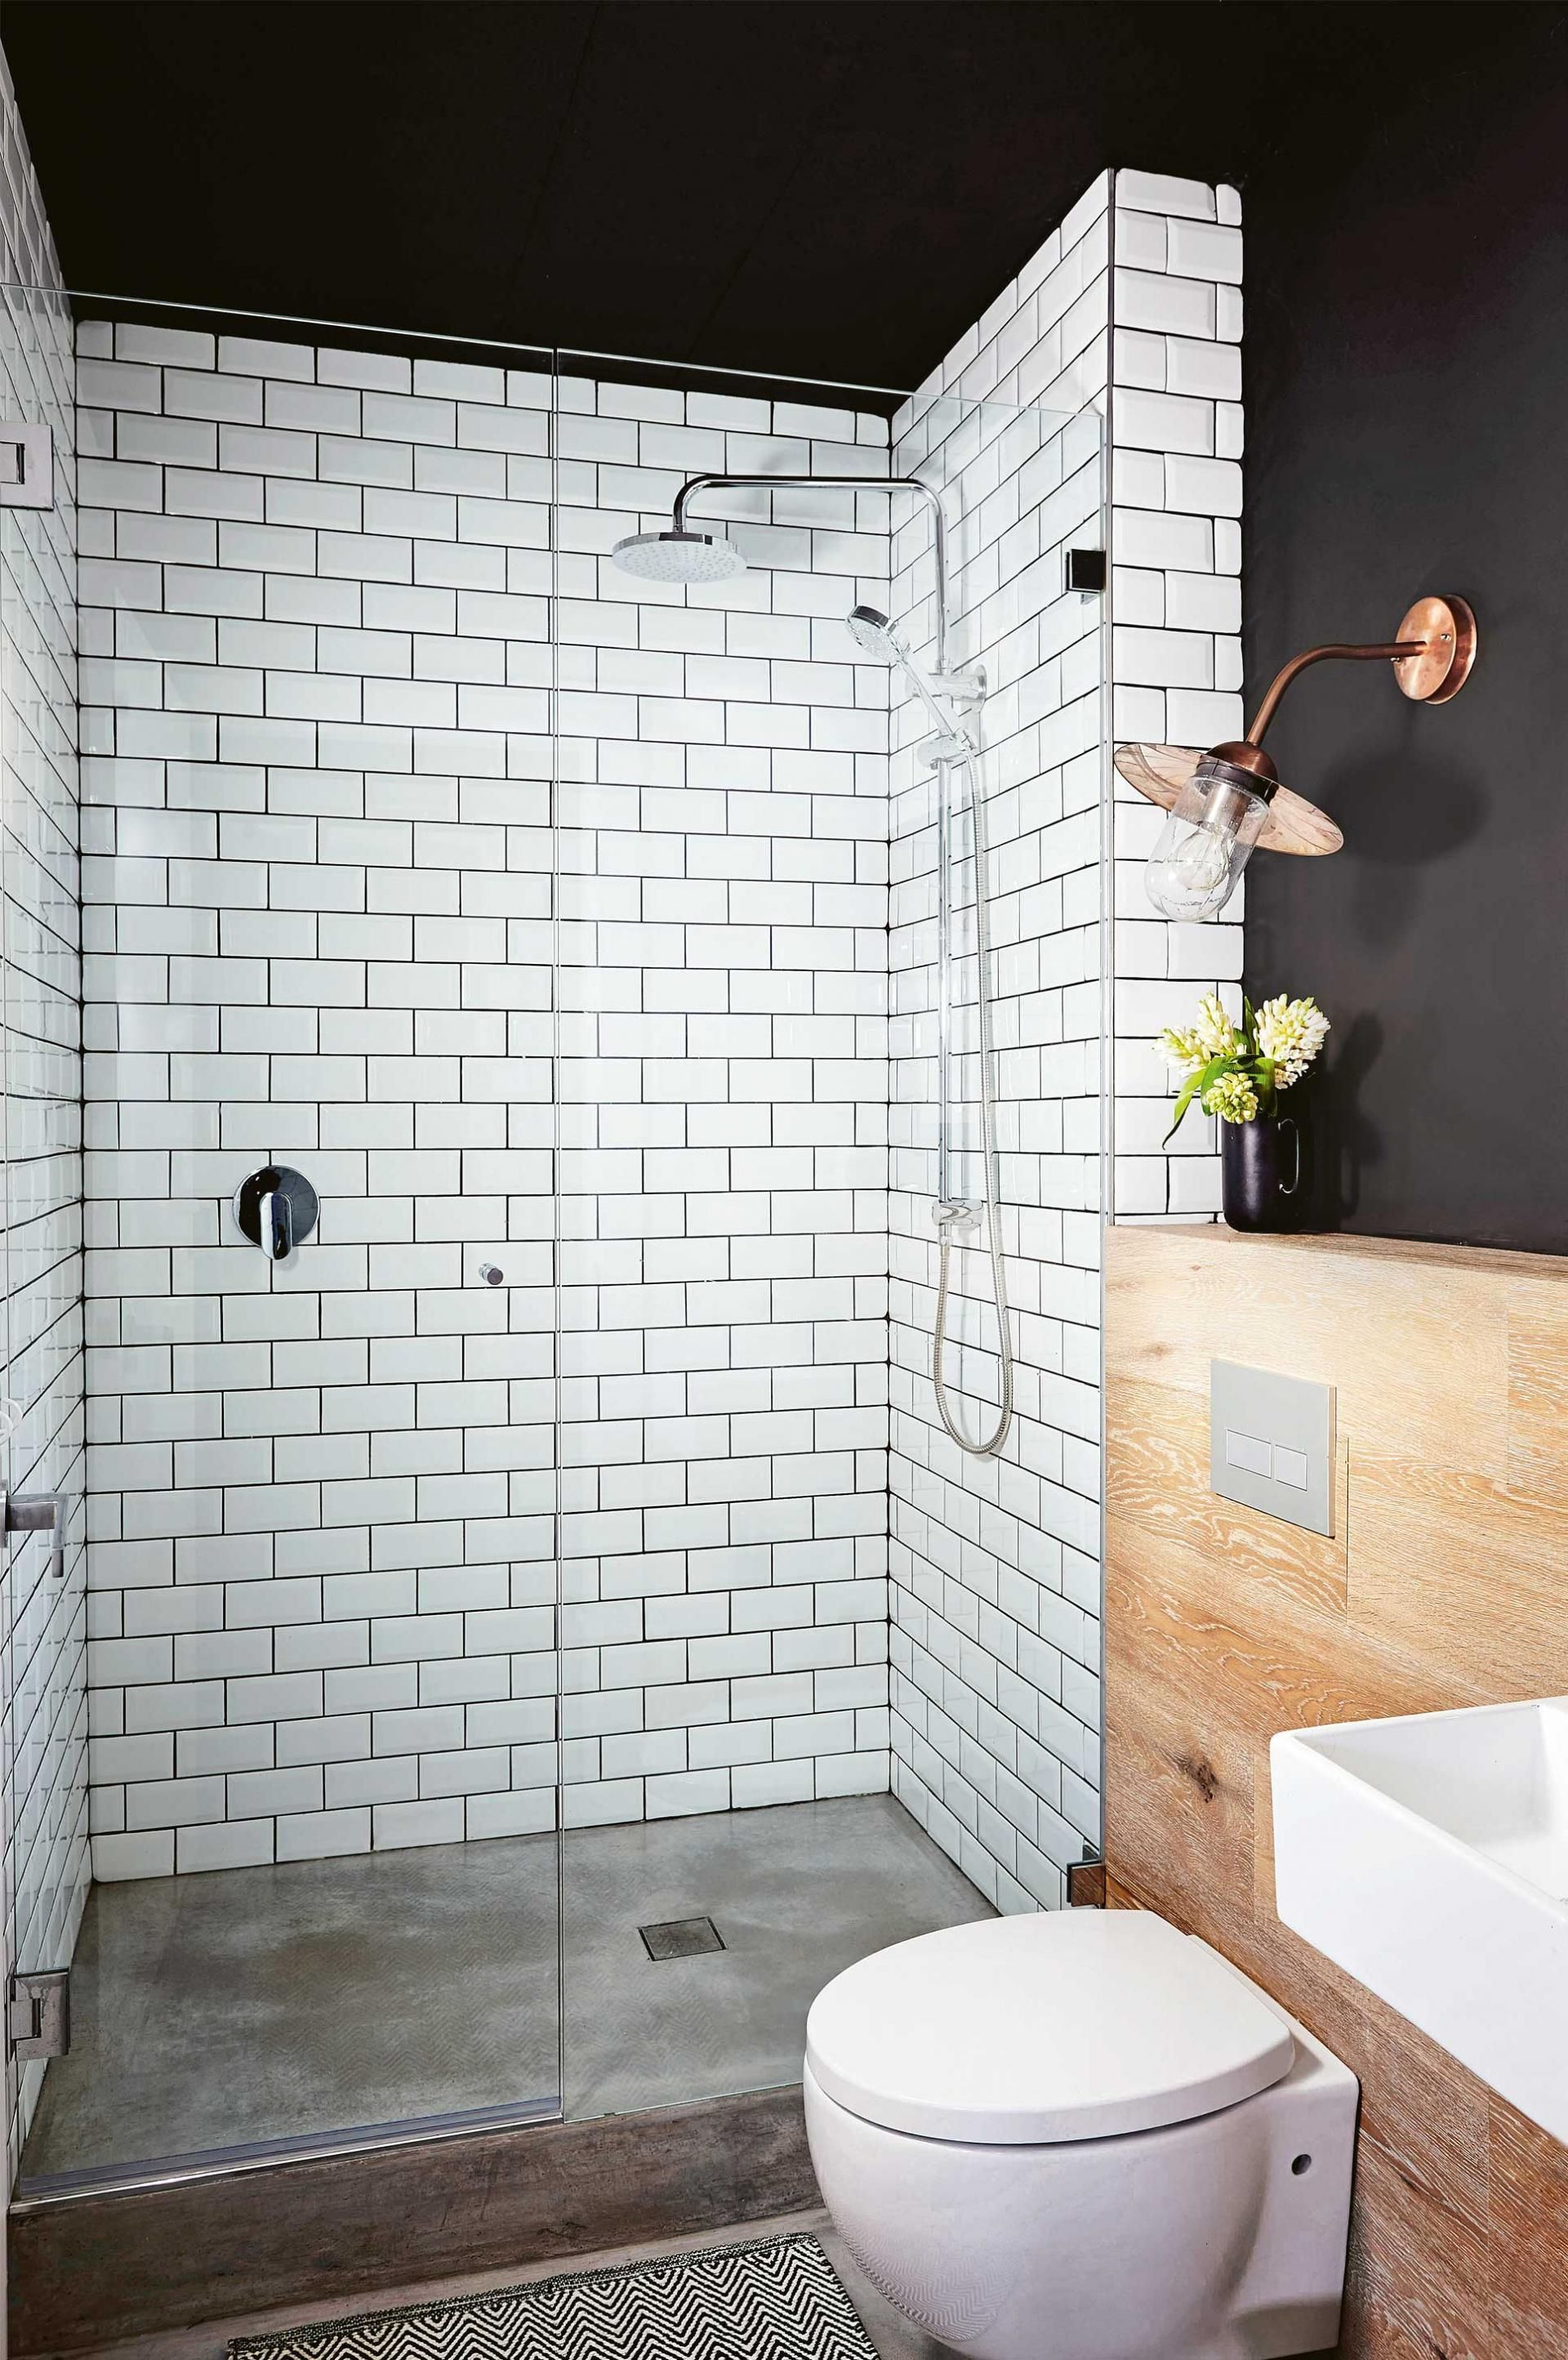 It Does Not Need To Be Precisely The Same As The Train Restroom You Could Simply Make Use Of The Ceramic Ti Shower Floor Concrete Bathroom Subway Tile Showers